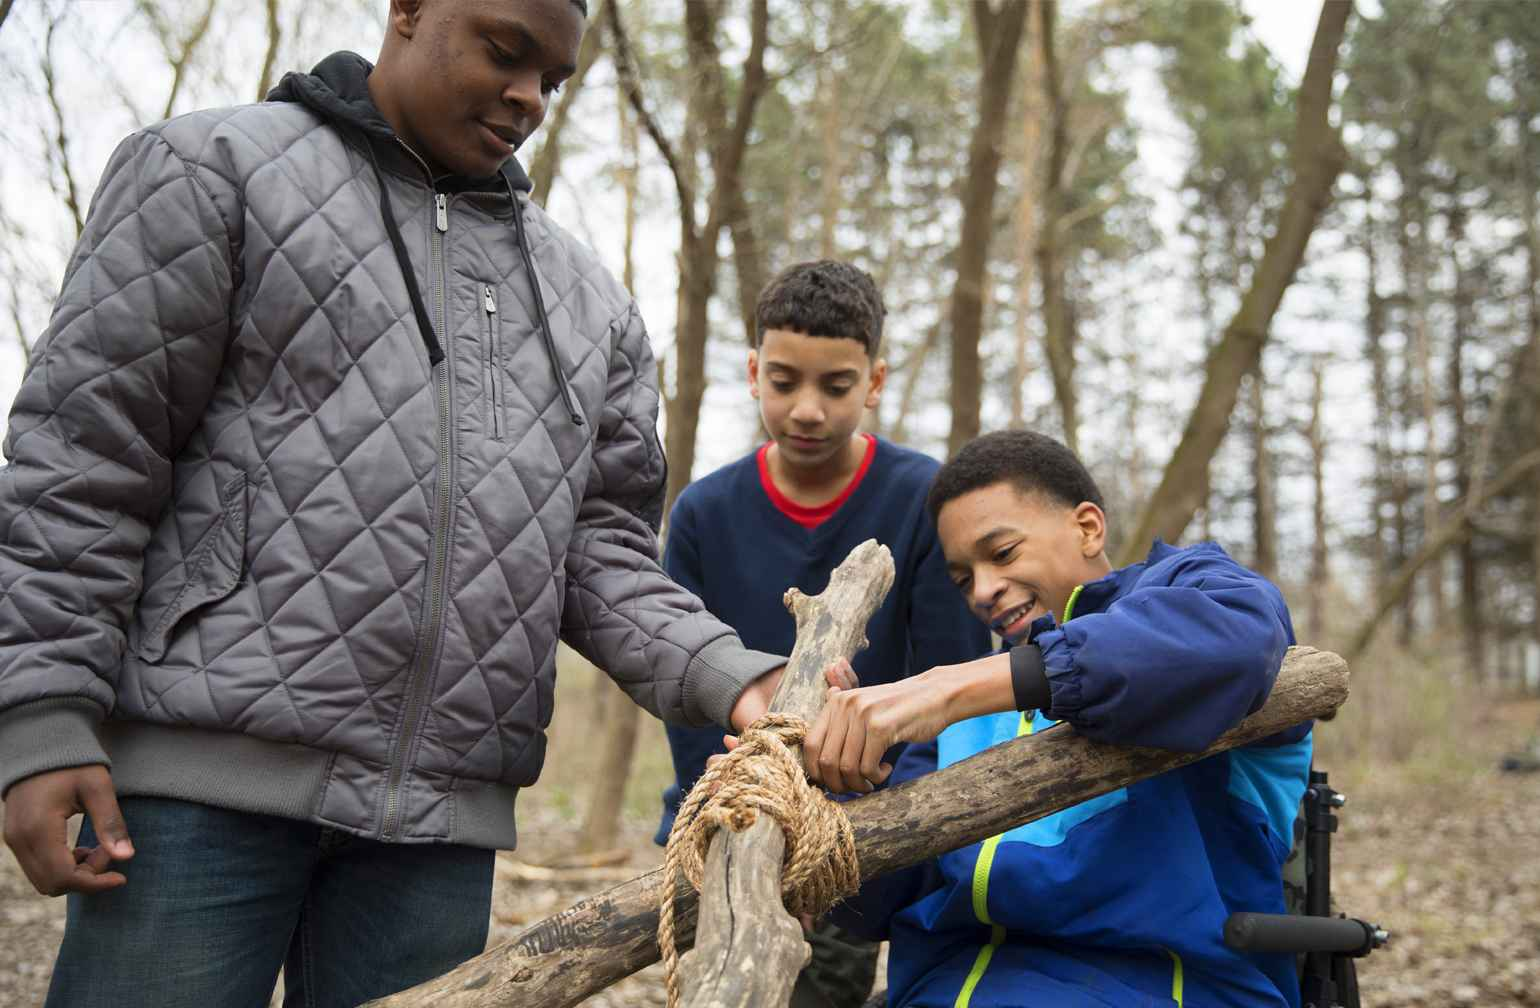 Elijah and his friends push tree branches together